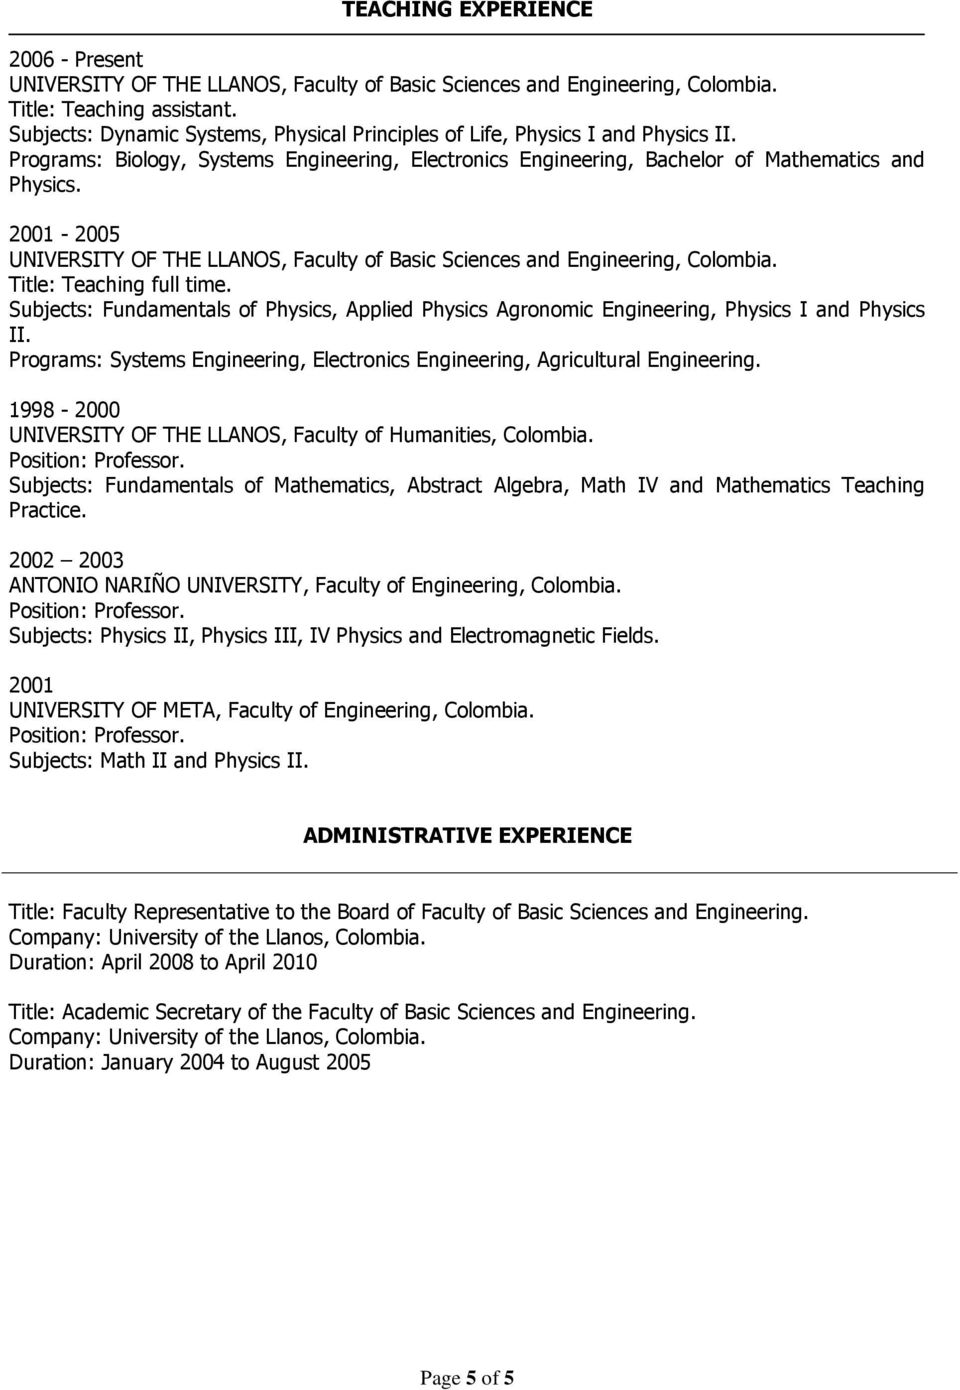 2001-2005 UNIVERSITY OF THE LLANOS, Faculty of Basic Sciences and Engineering, Colombia. Title: Teaching full time.